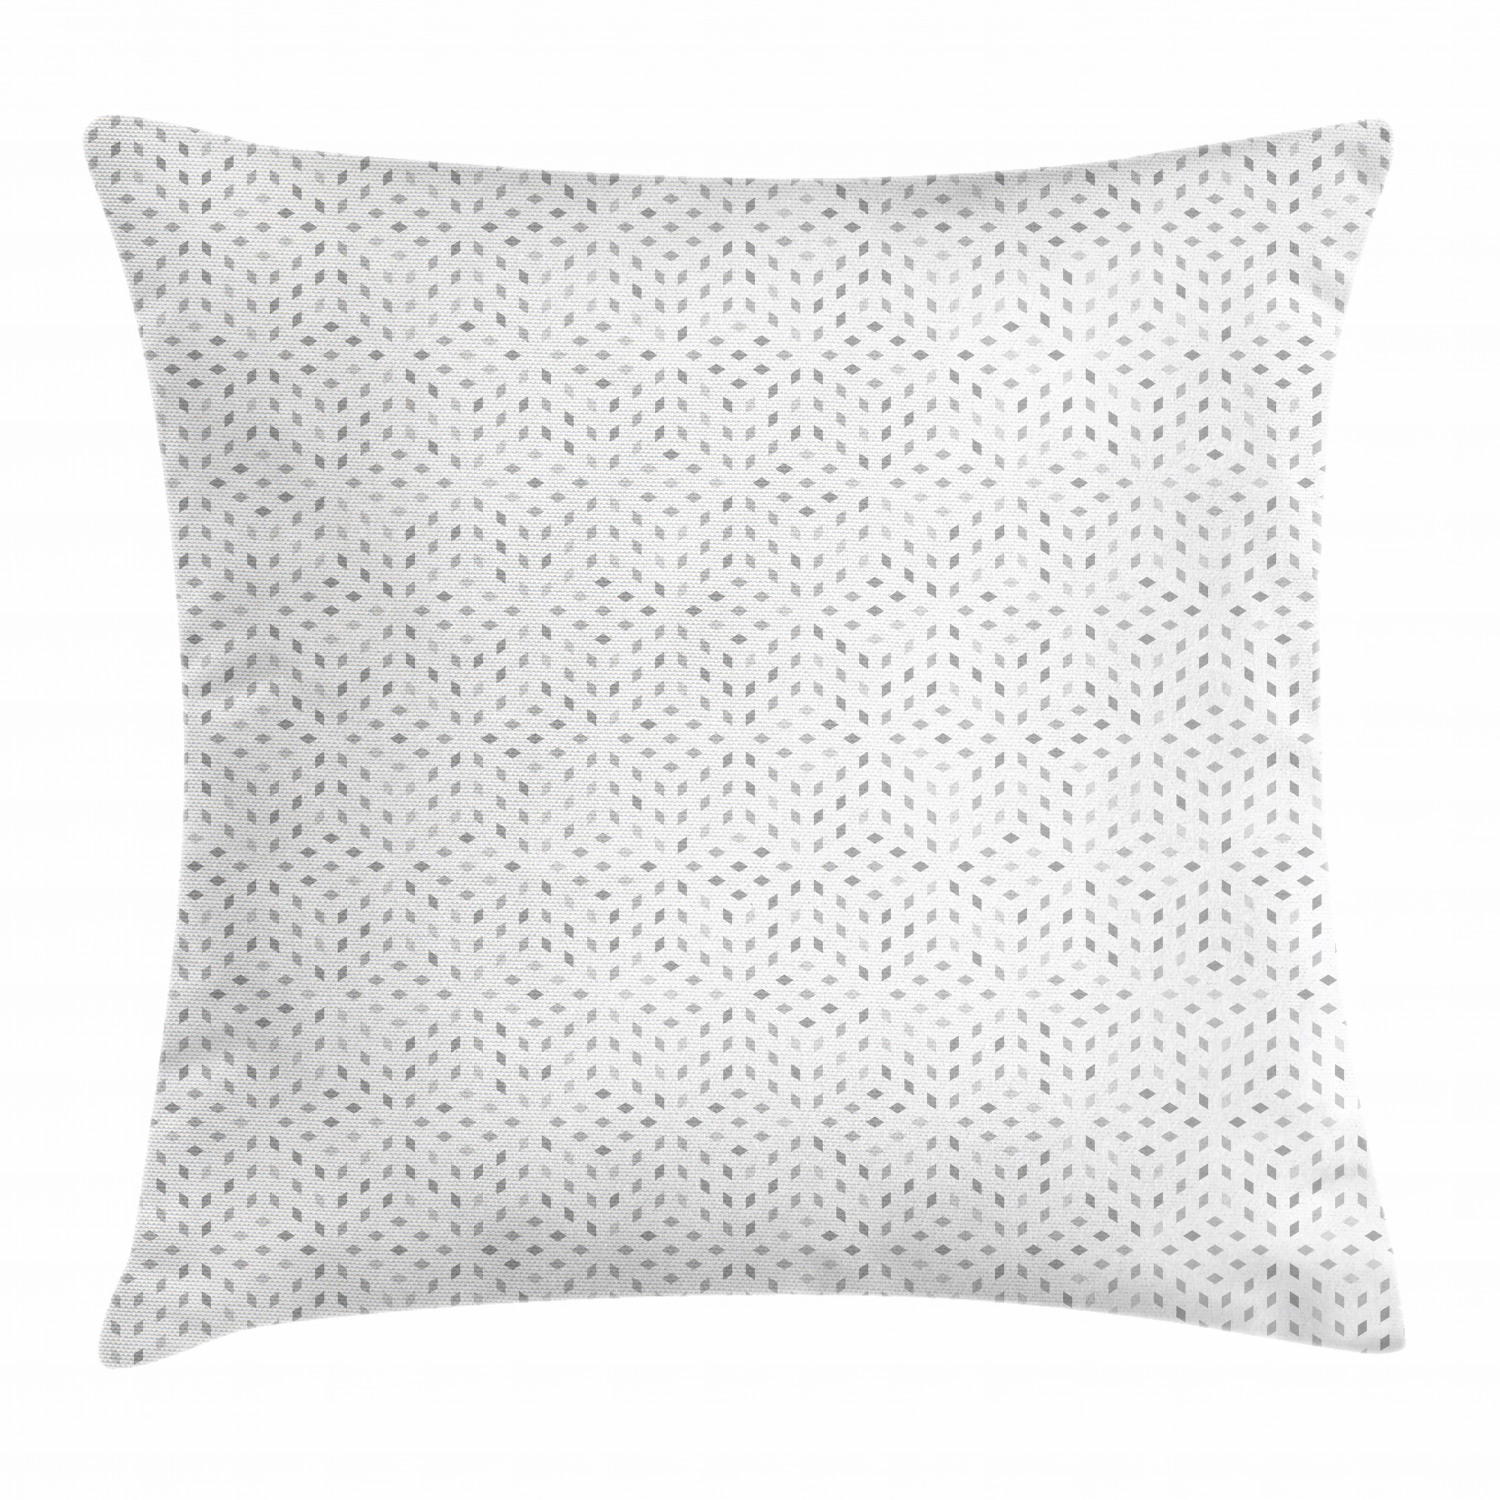 grey and white throw pillow cushion cover futuristic pattern with small grey squares and optical effect decorative square accent pillow case 16 x